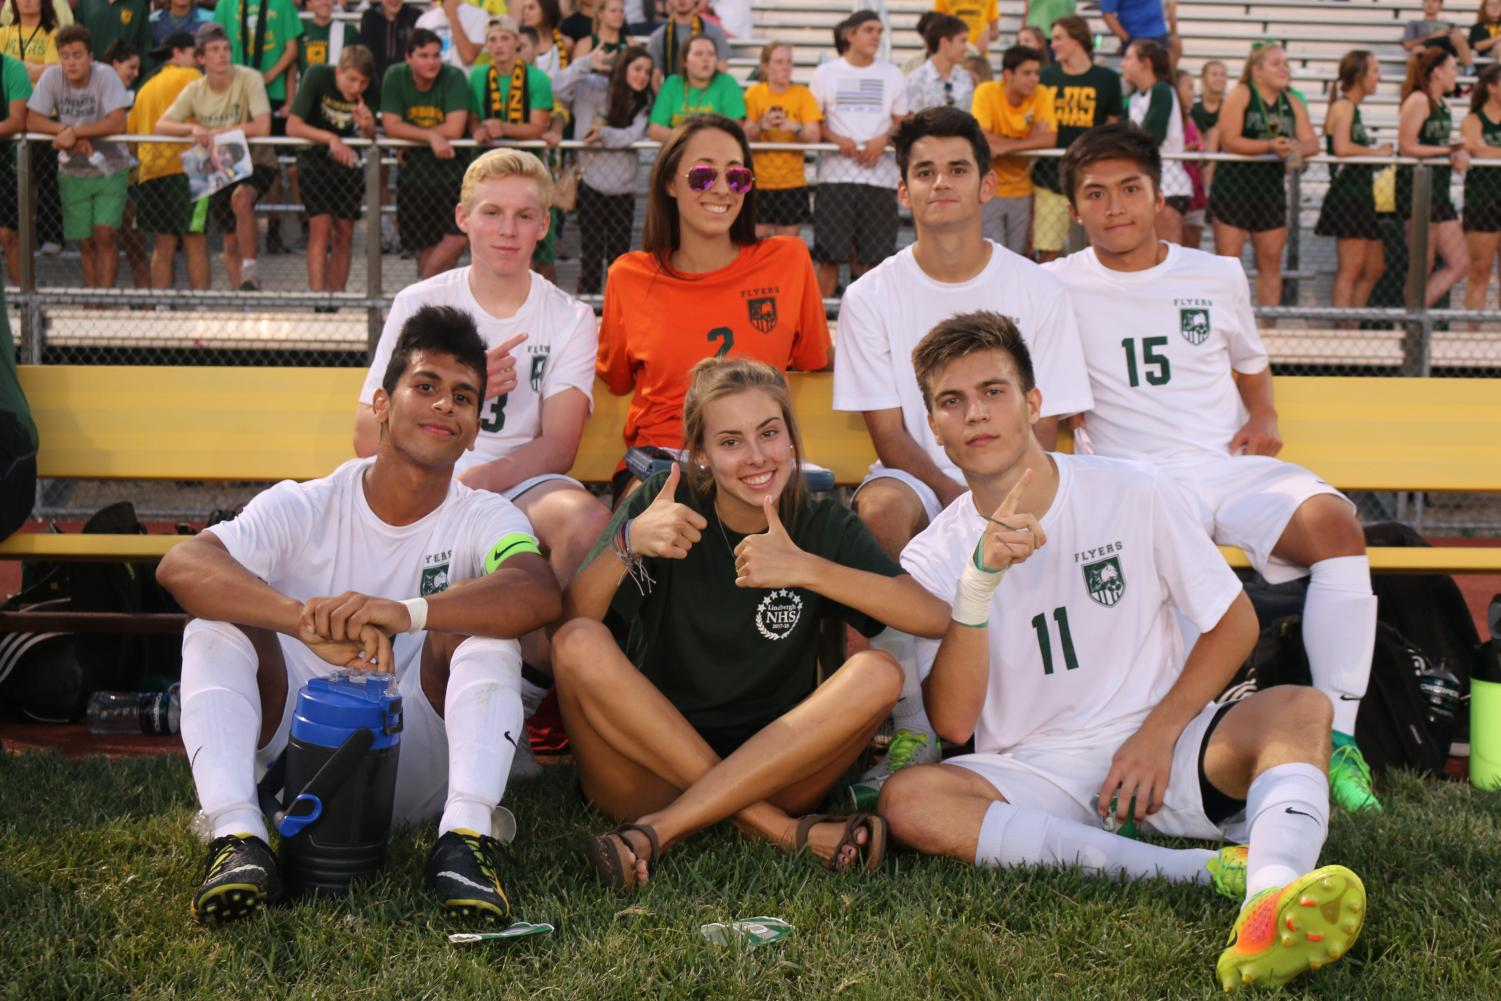 Senior soccer players Garret Butz (12), Arman Kovac (12), David Ha (12), Sadiq Hasan (12) and Muhamed H. (12) spend their bench time with managers Sydney Marino (12) and Caroline Yenzer (12).